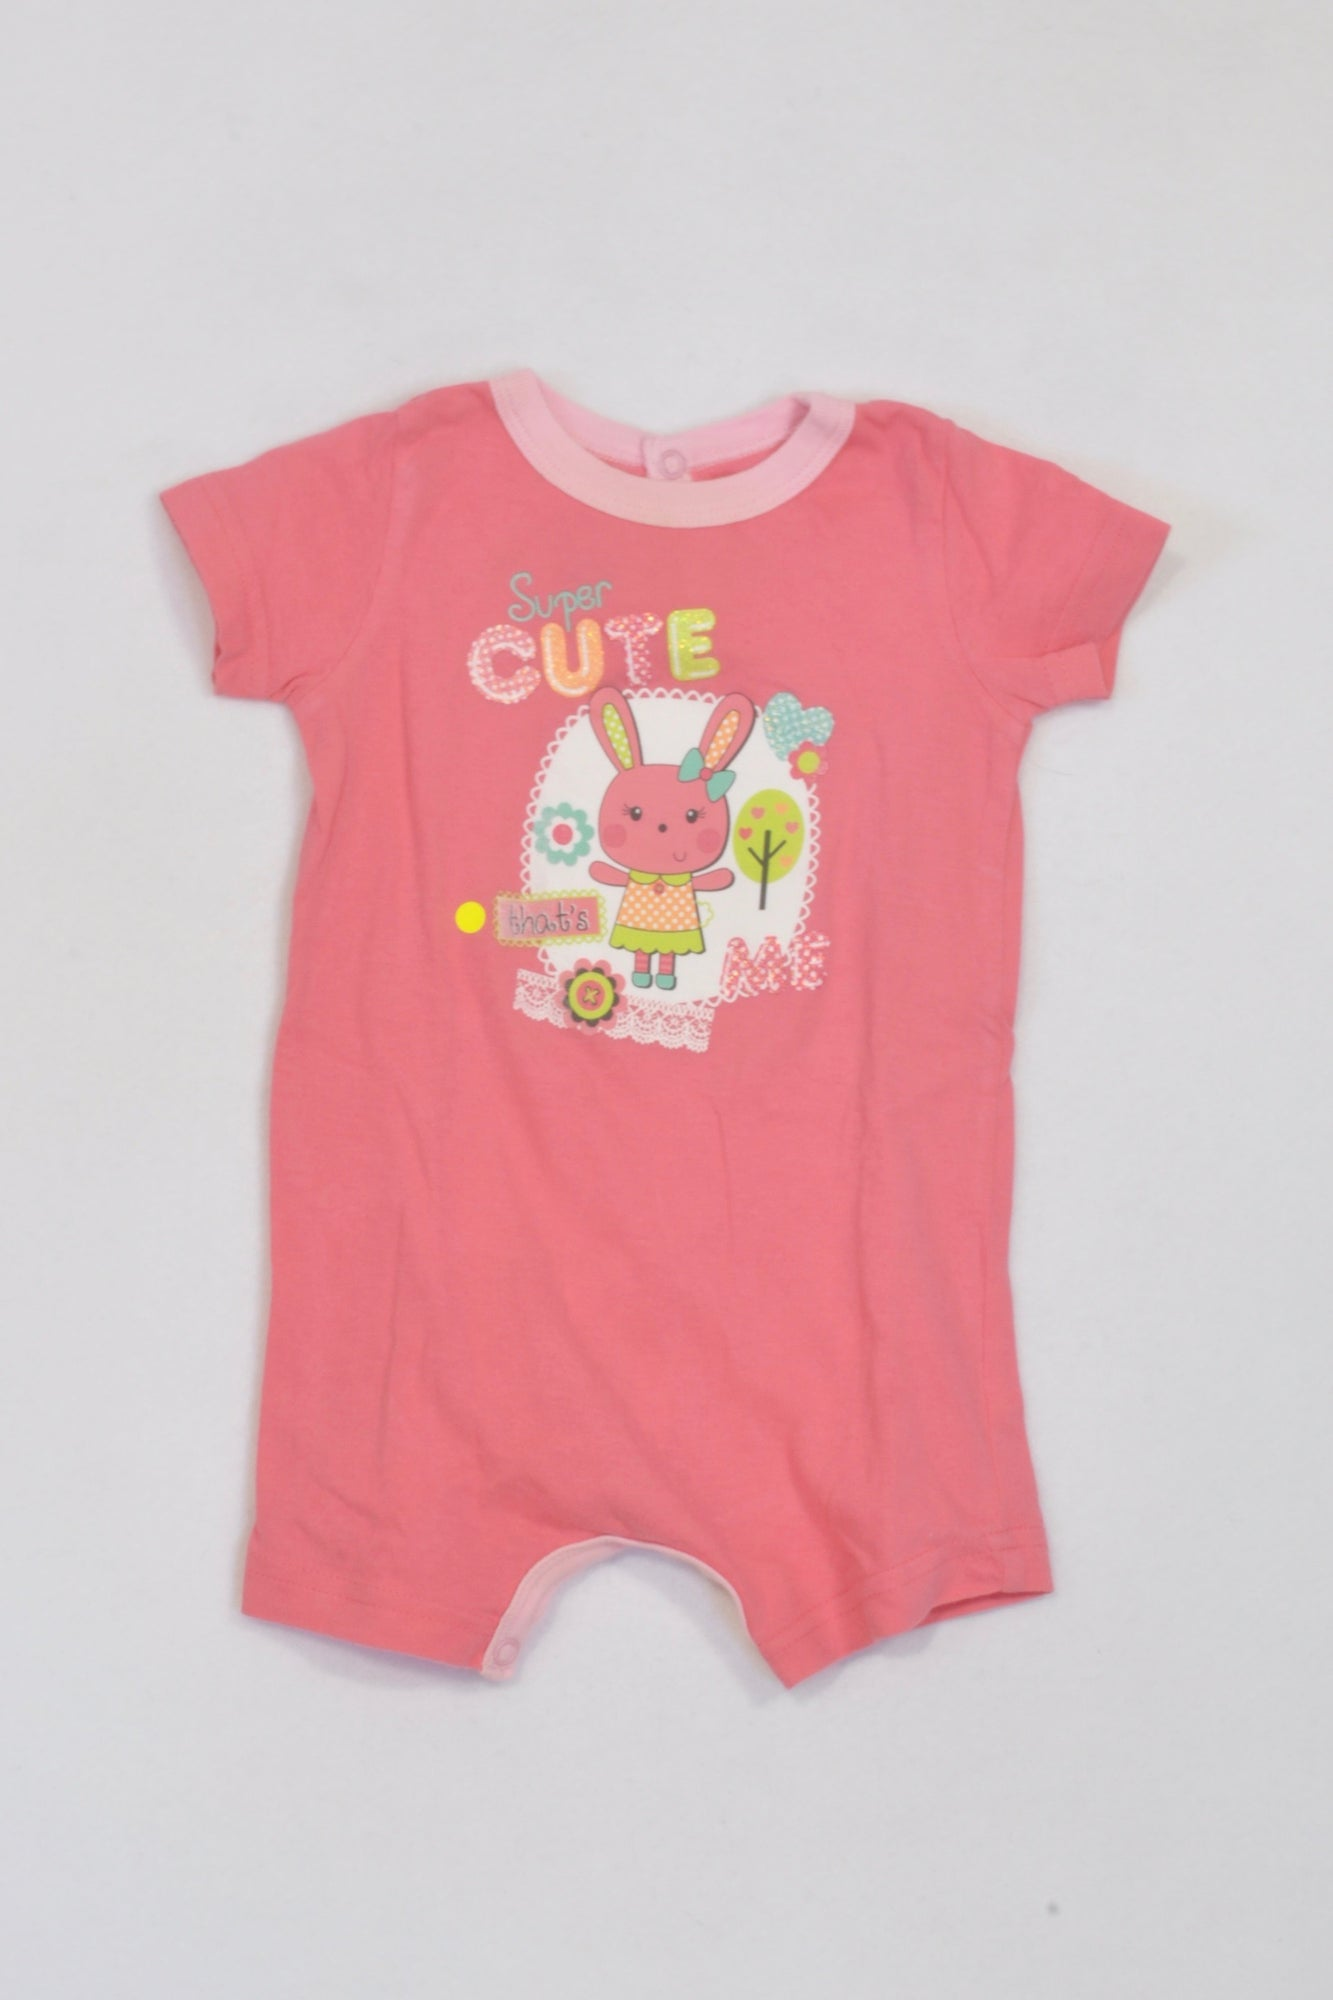 Woolworths Pink Super Cute Bunny Romper Girls 3-6 months